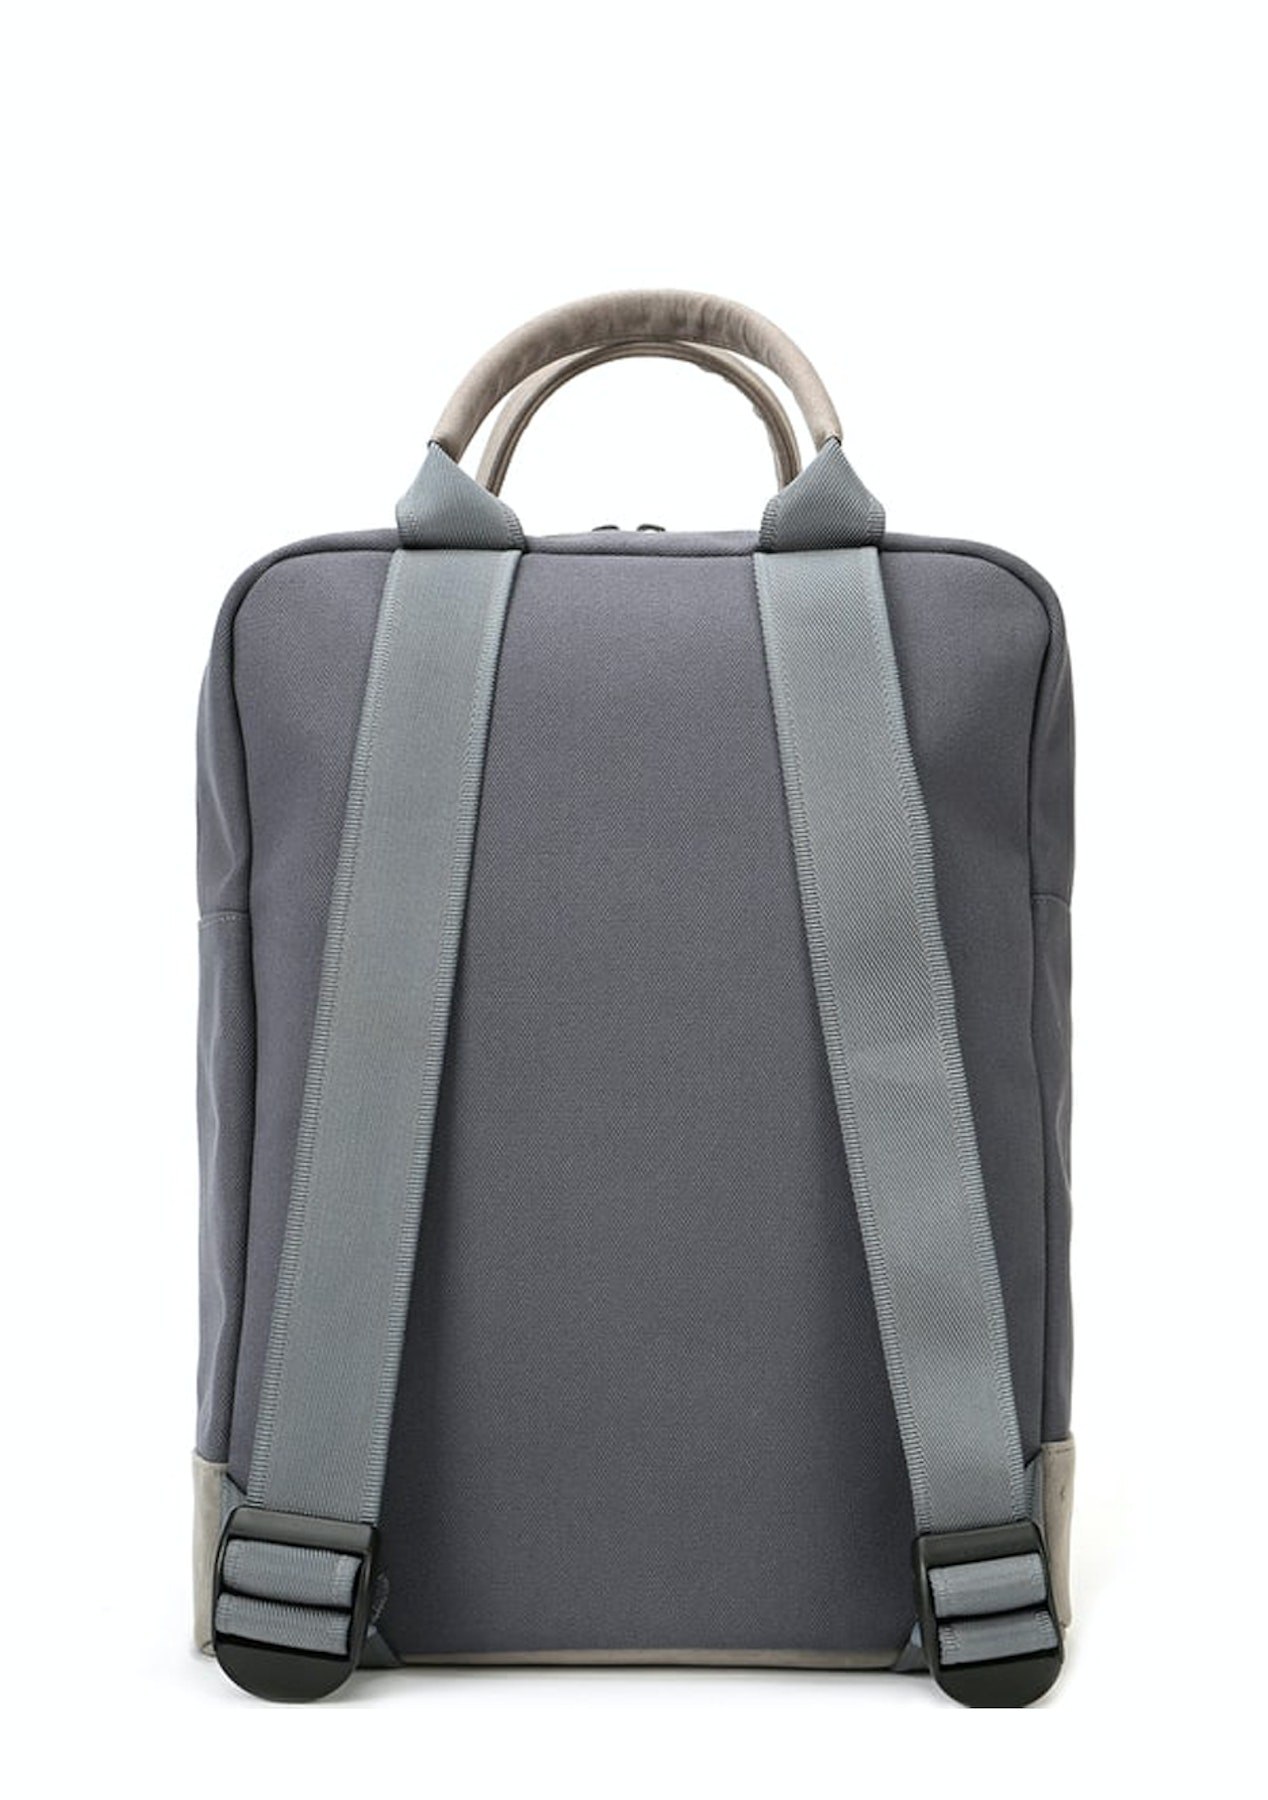 1a65ed49e Mi Pac - Tote Backpack - Charcoal - Back to School - Lunch boxes, bottles,  Bags & more - Onceit